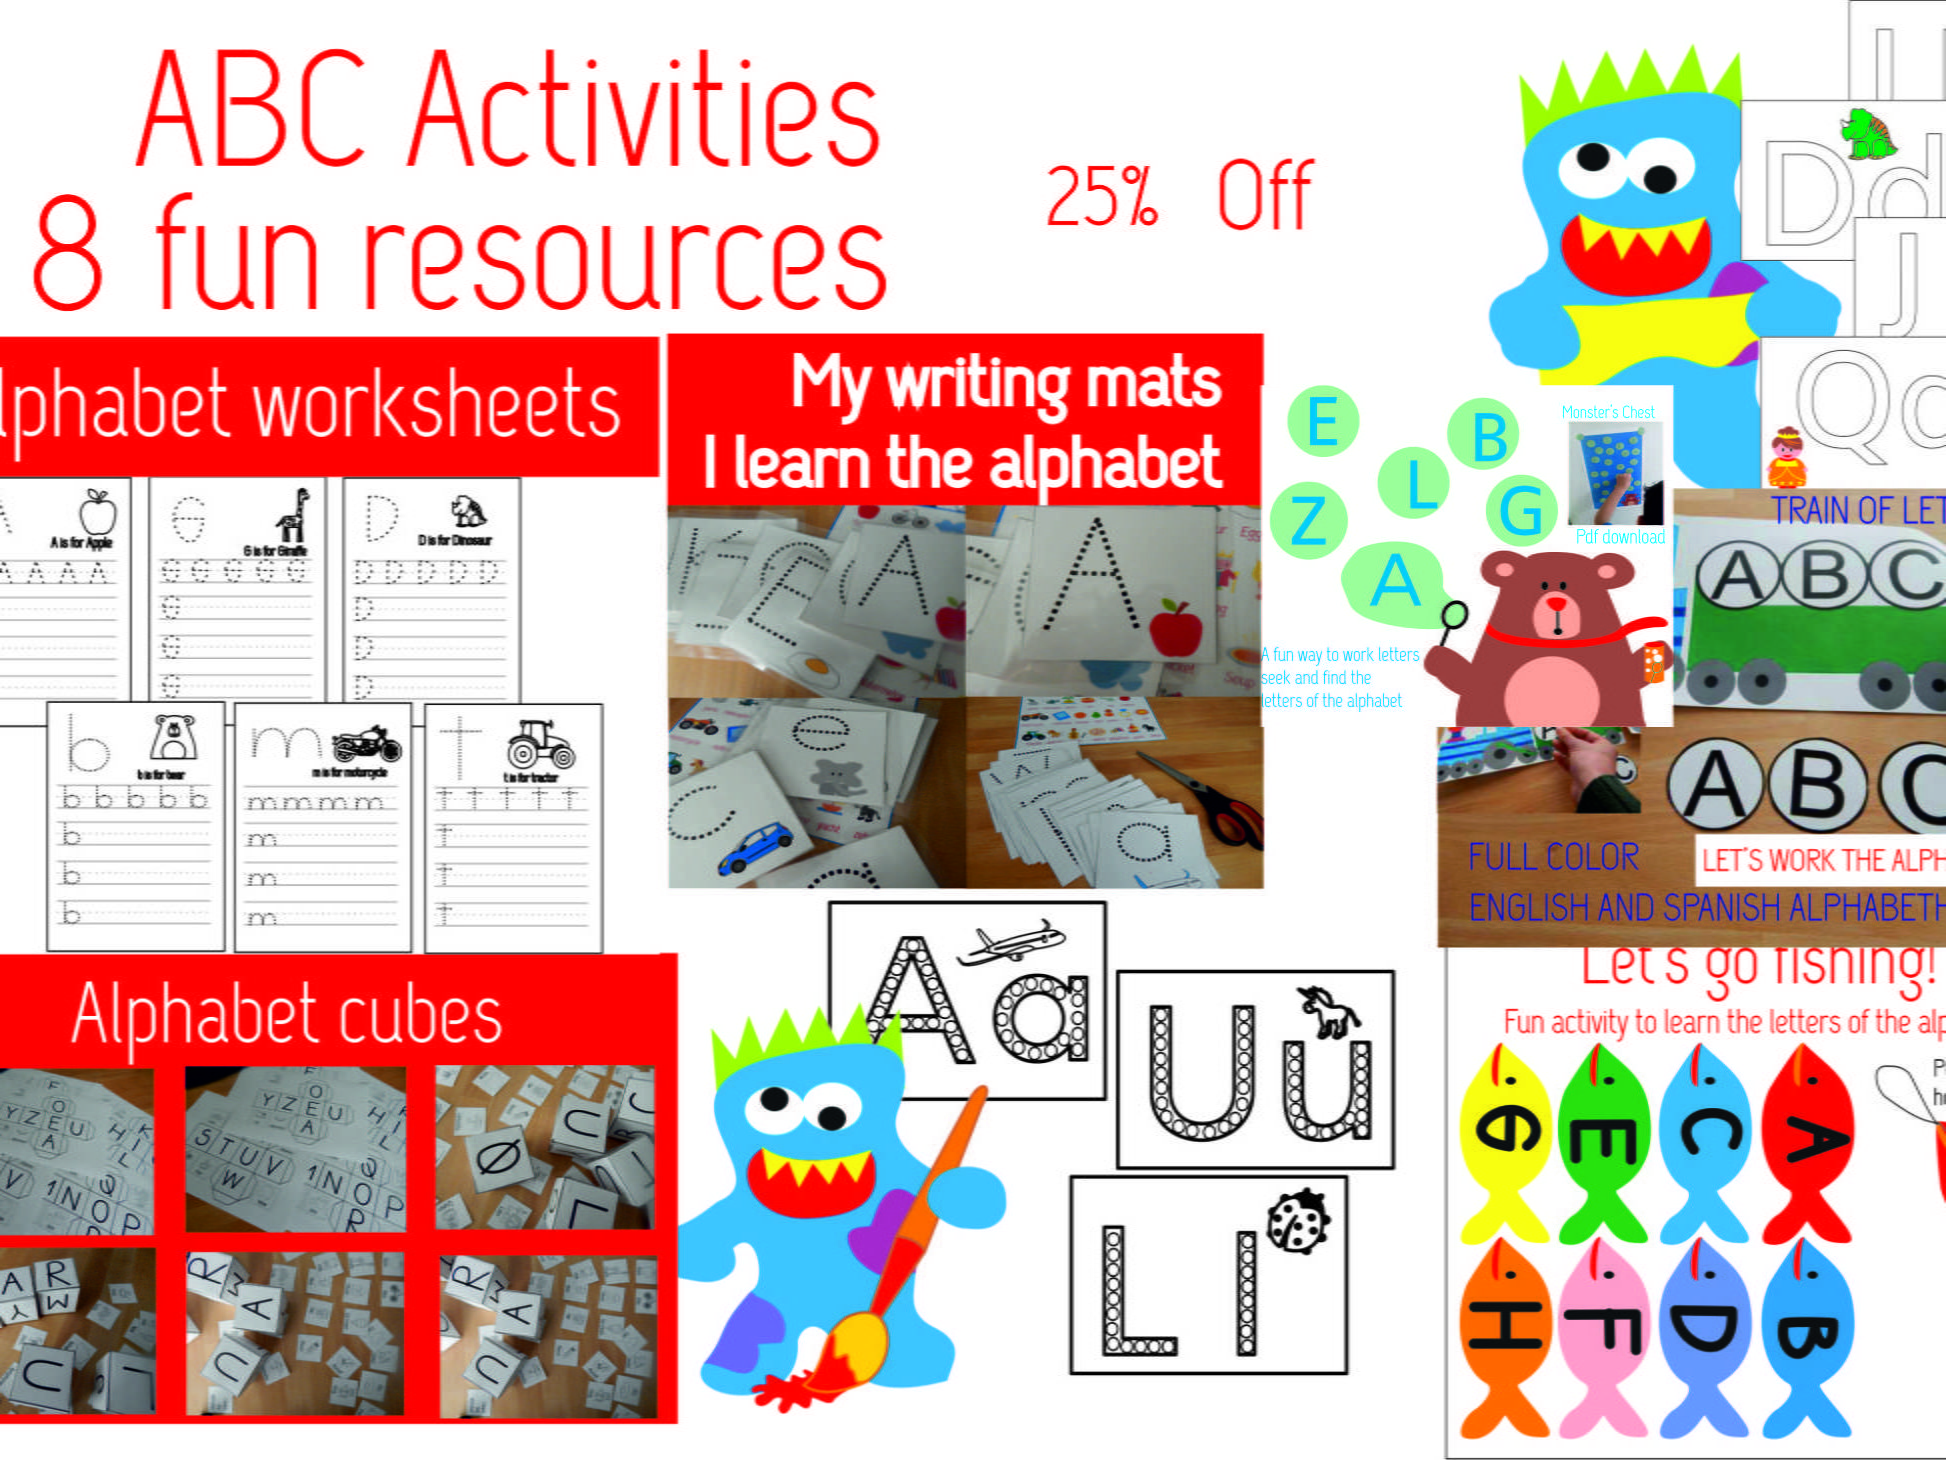 ABC activities, let's learn the alphabet